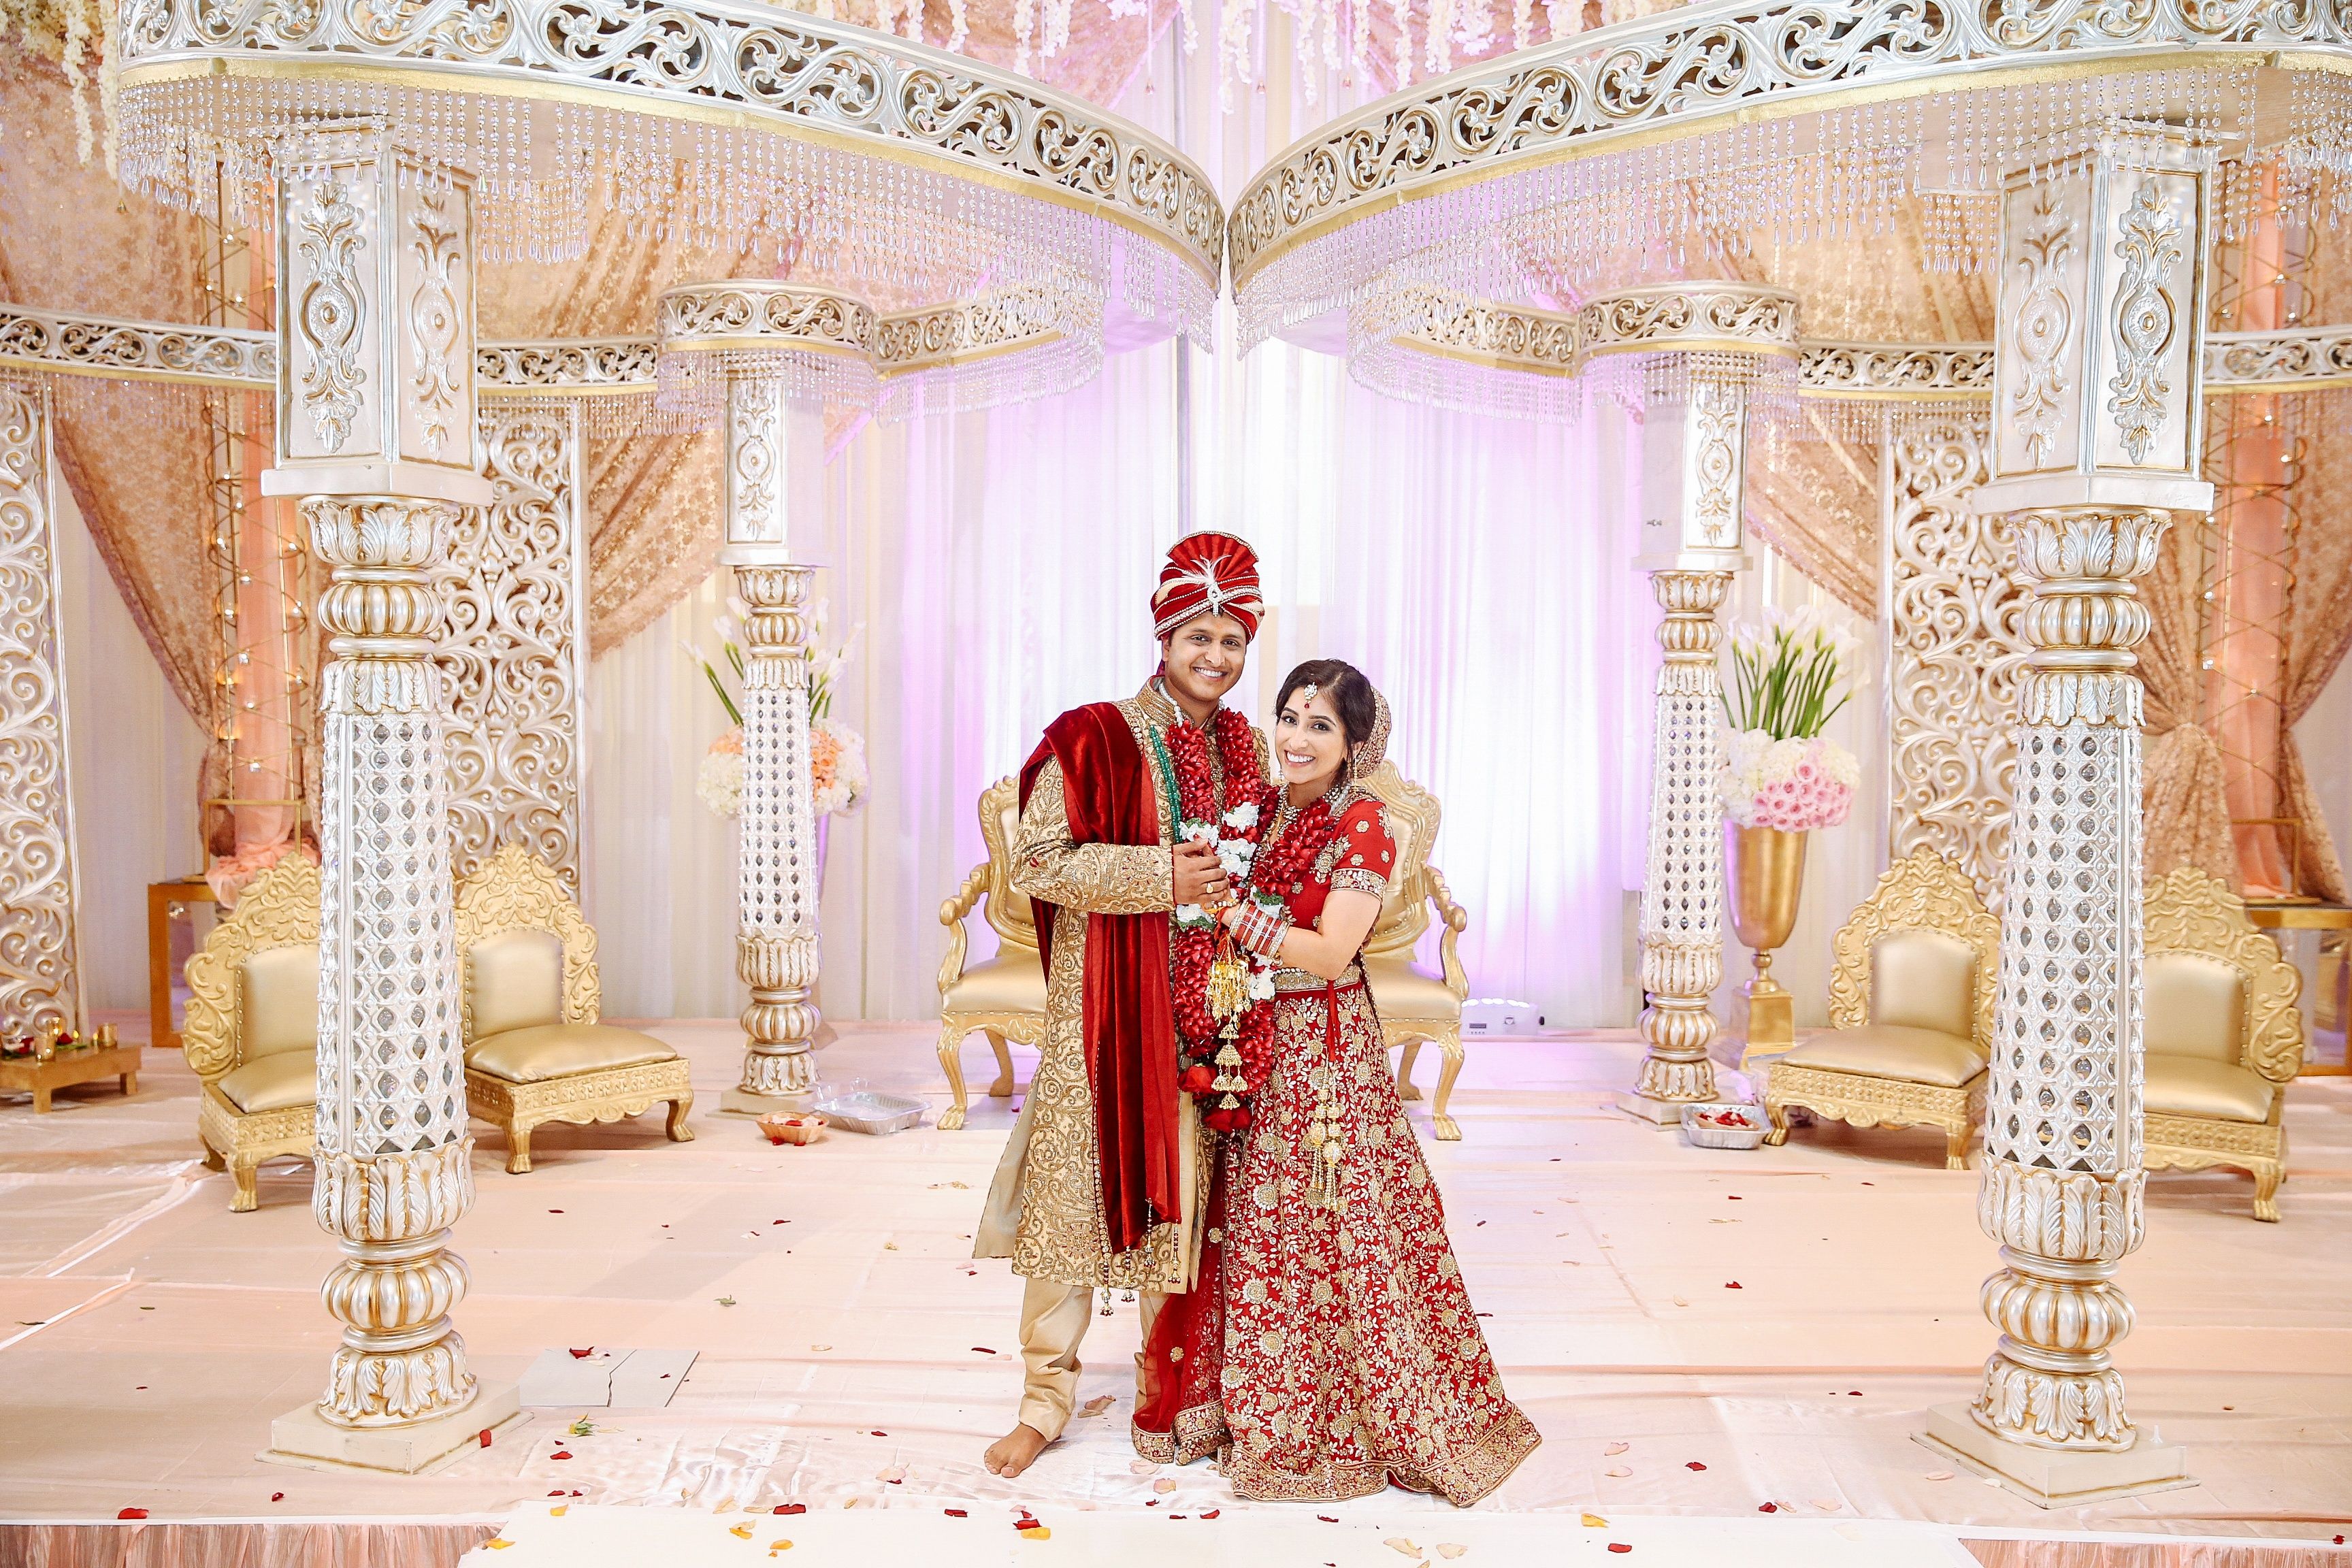 VEK Photo - Indian Wedding Photographer Dallas